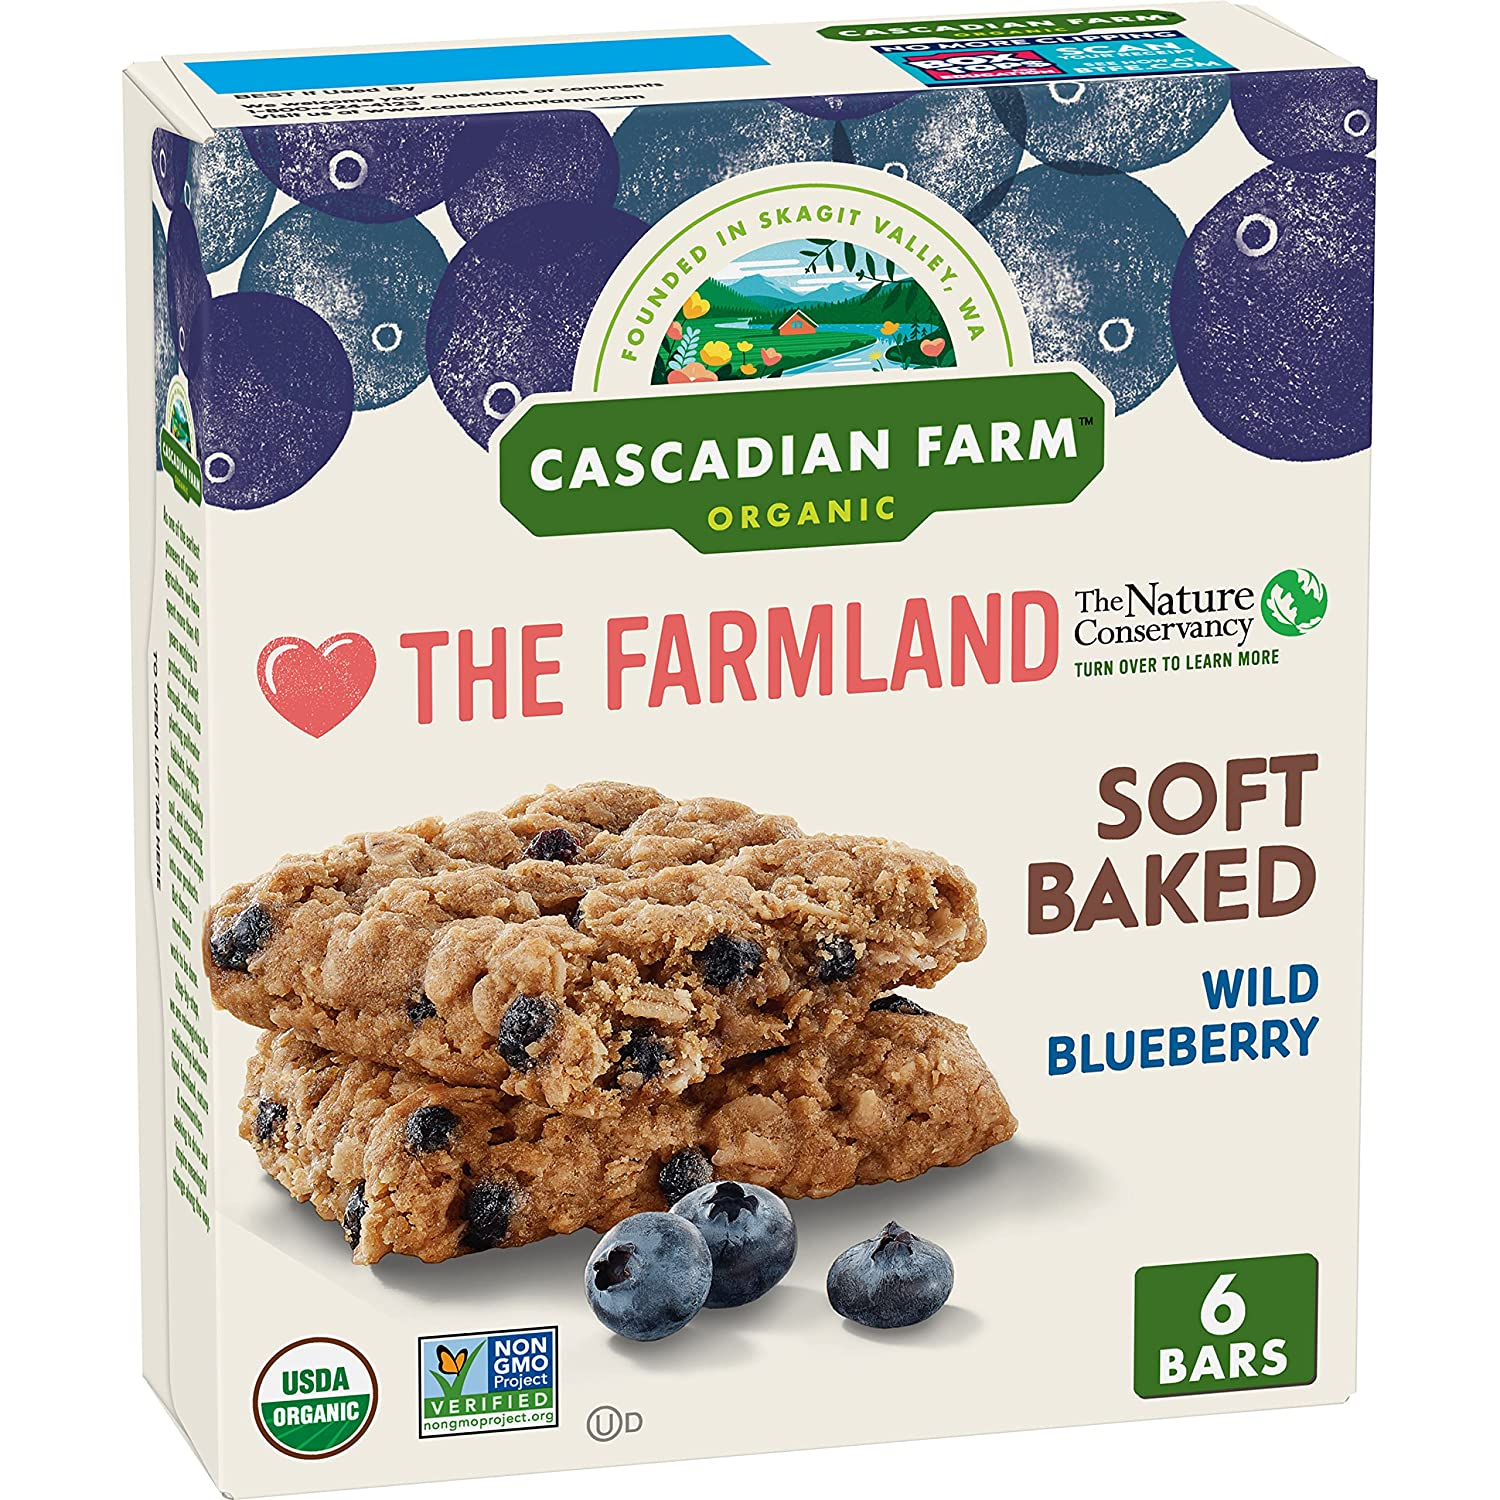 Cascadian Farm Organic Blueberry Soft Squares All items in the store Snack Bar Baked trust